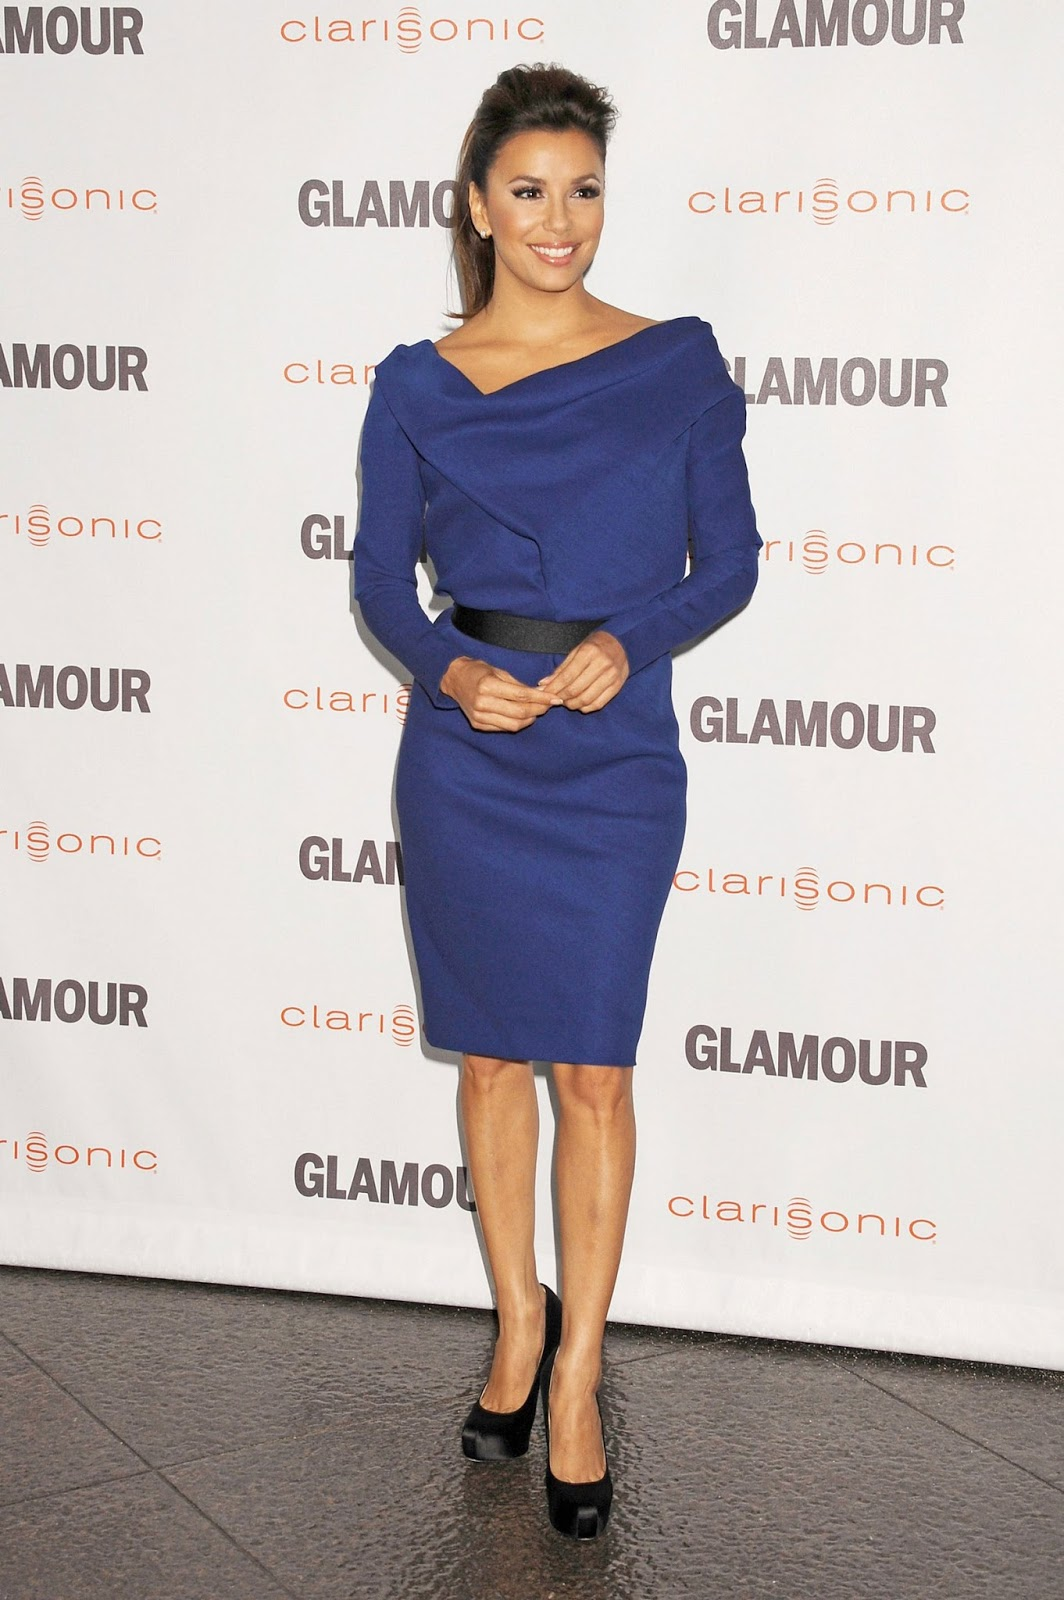 HQ Photos of Eva Longoria at Glamour Reel Moments